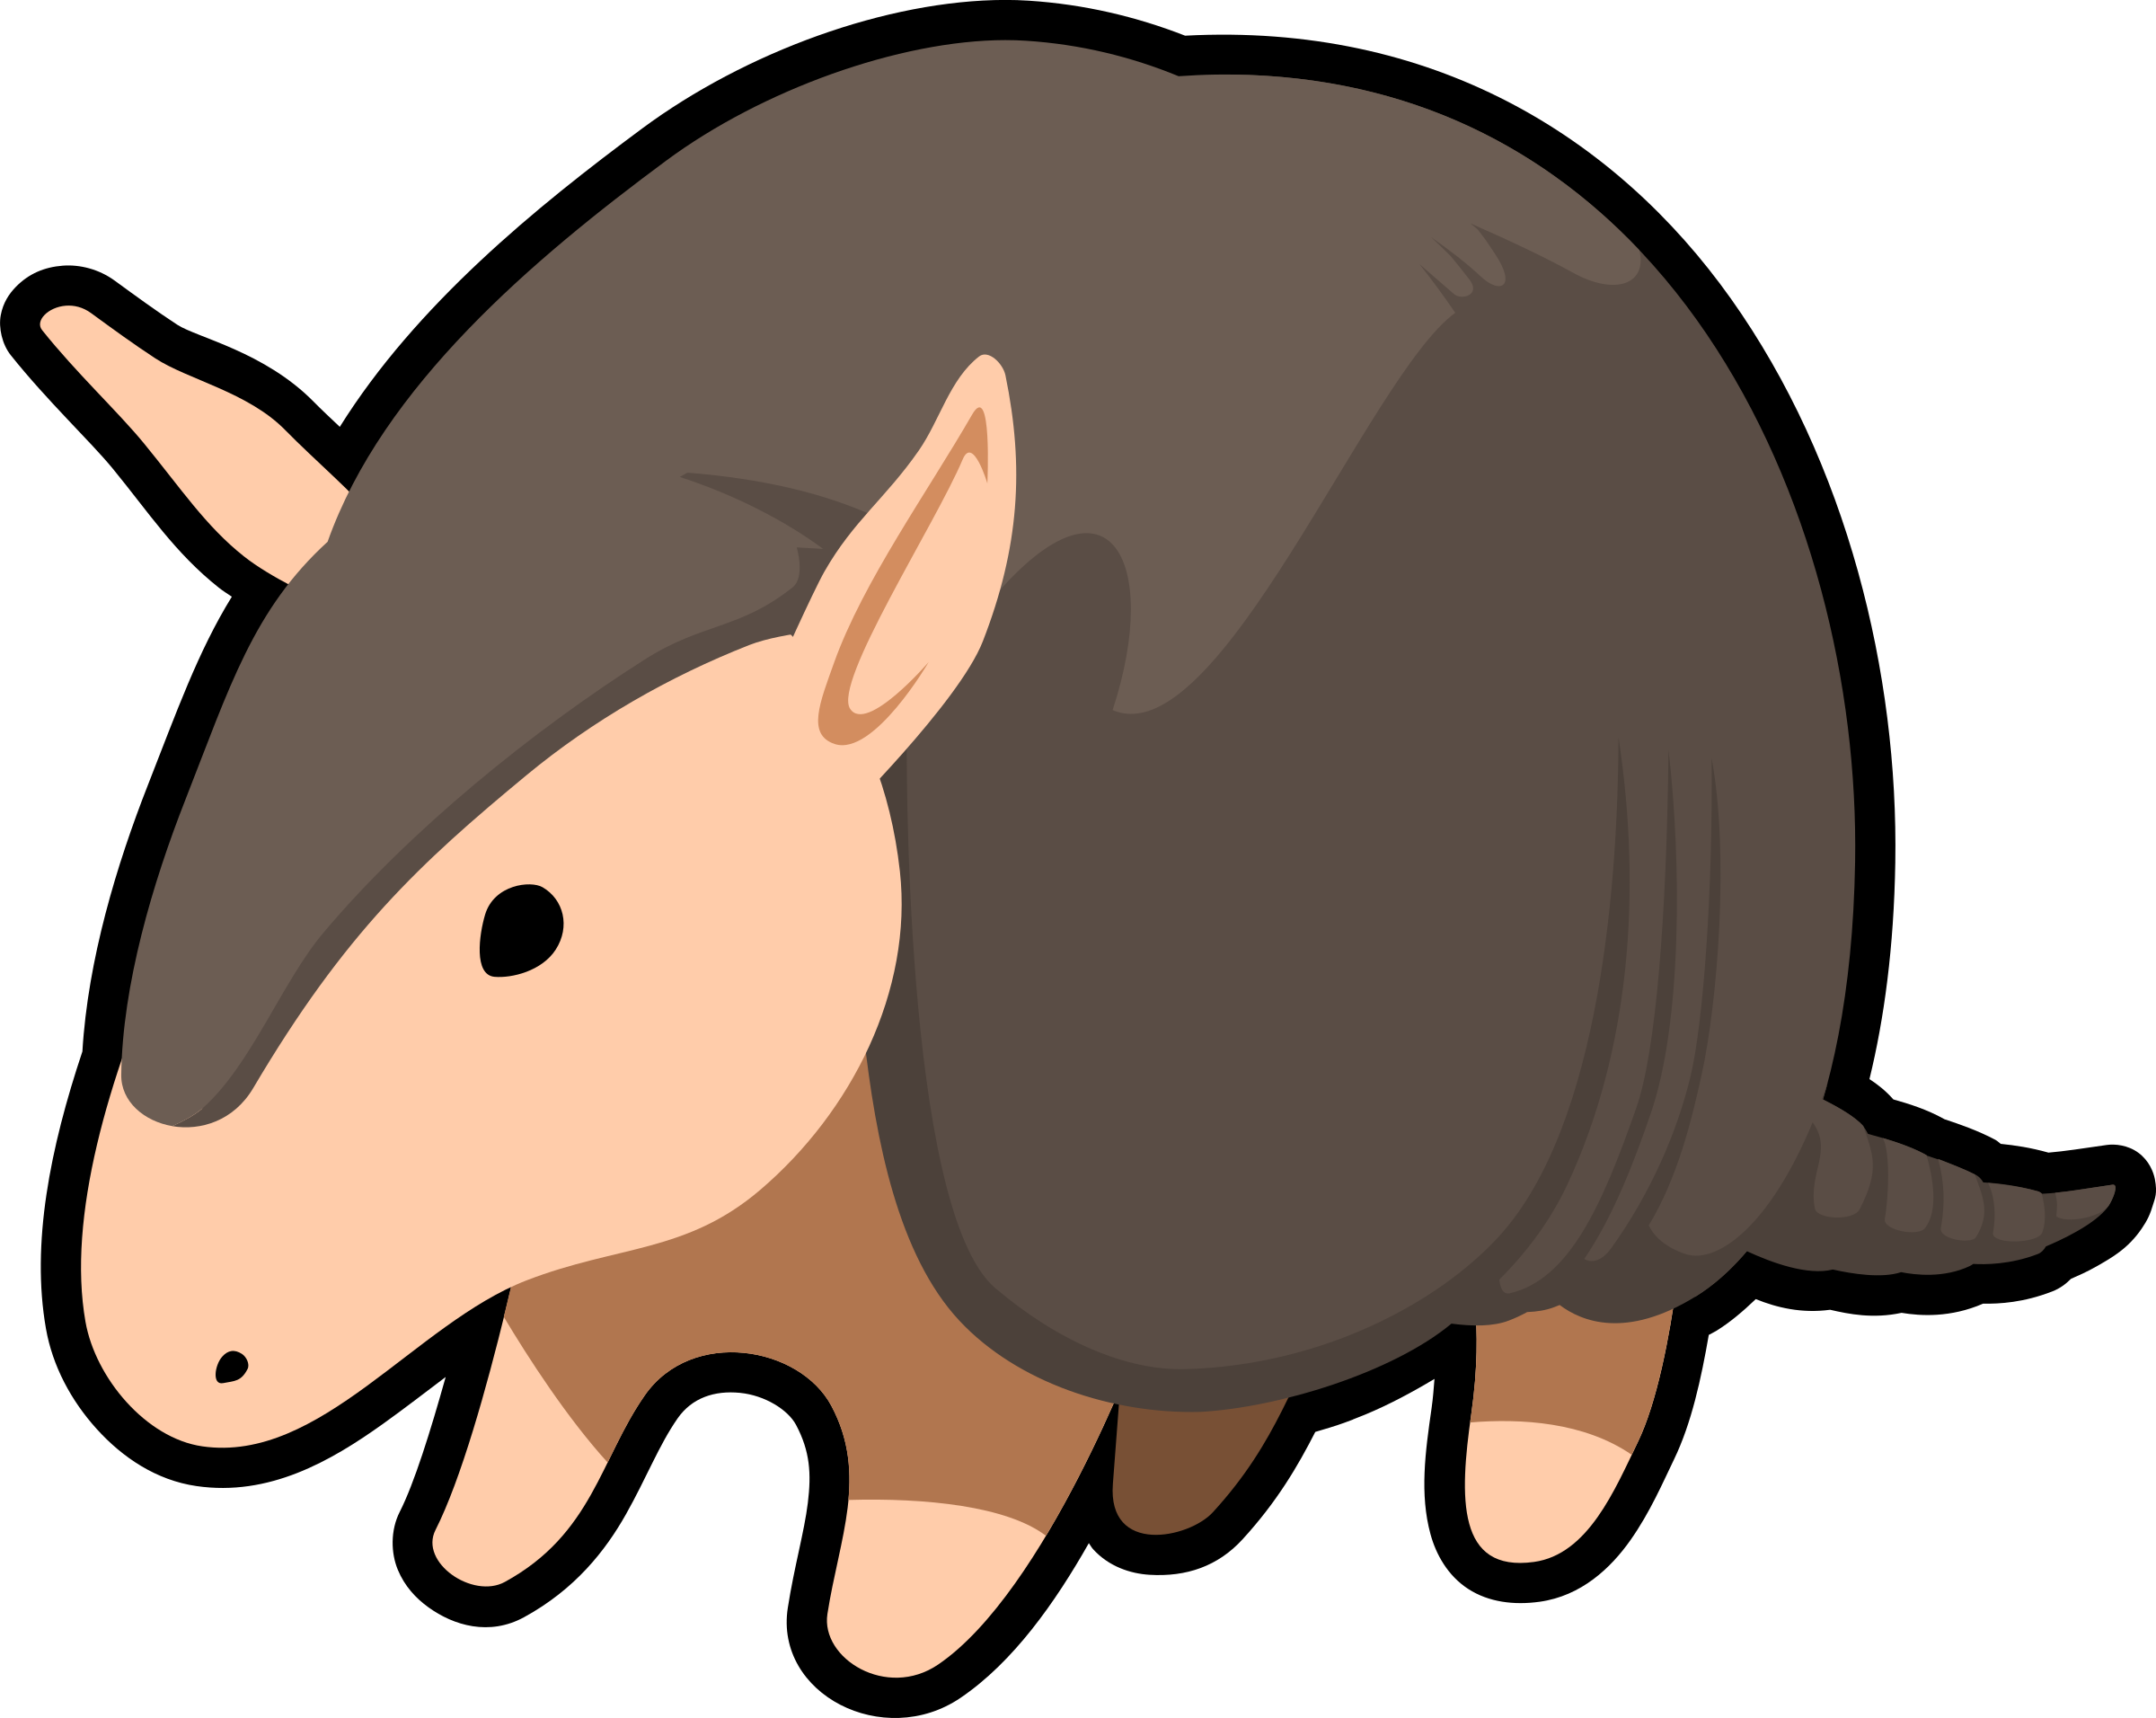 armadillo by tzunghaor